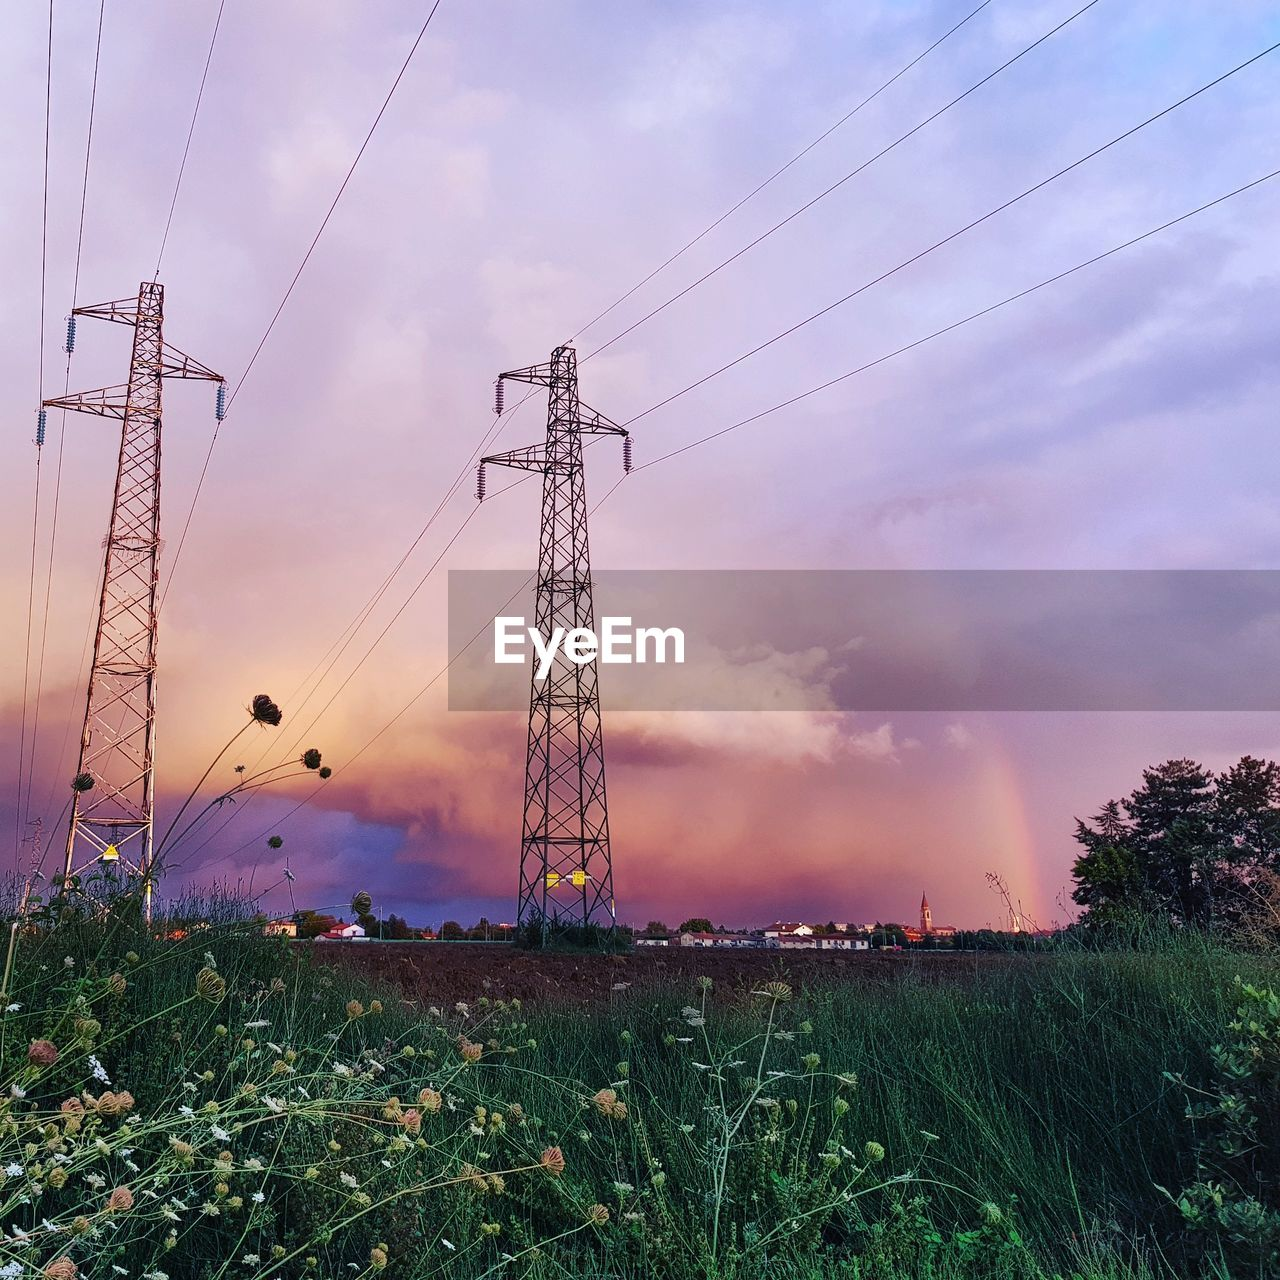 sky, electricity, fuel and power generation, cable, technology, electricity pylon, cloud - sky, power supply, power line, field, connection, plant, land, nature, sunset, grass, environment, no people, landscape, low angle view, outdoors, complexity, electrical equipment